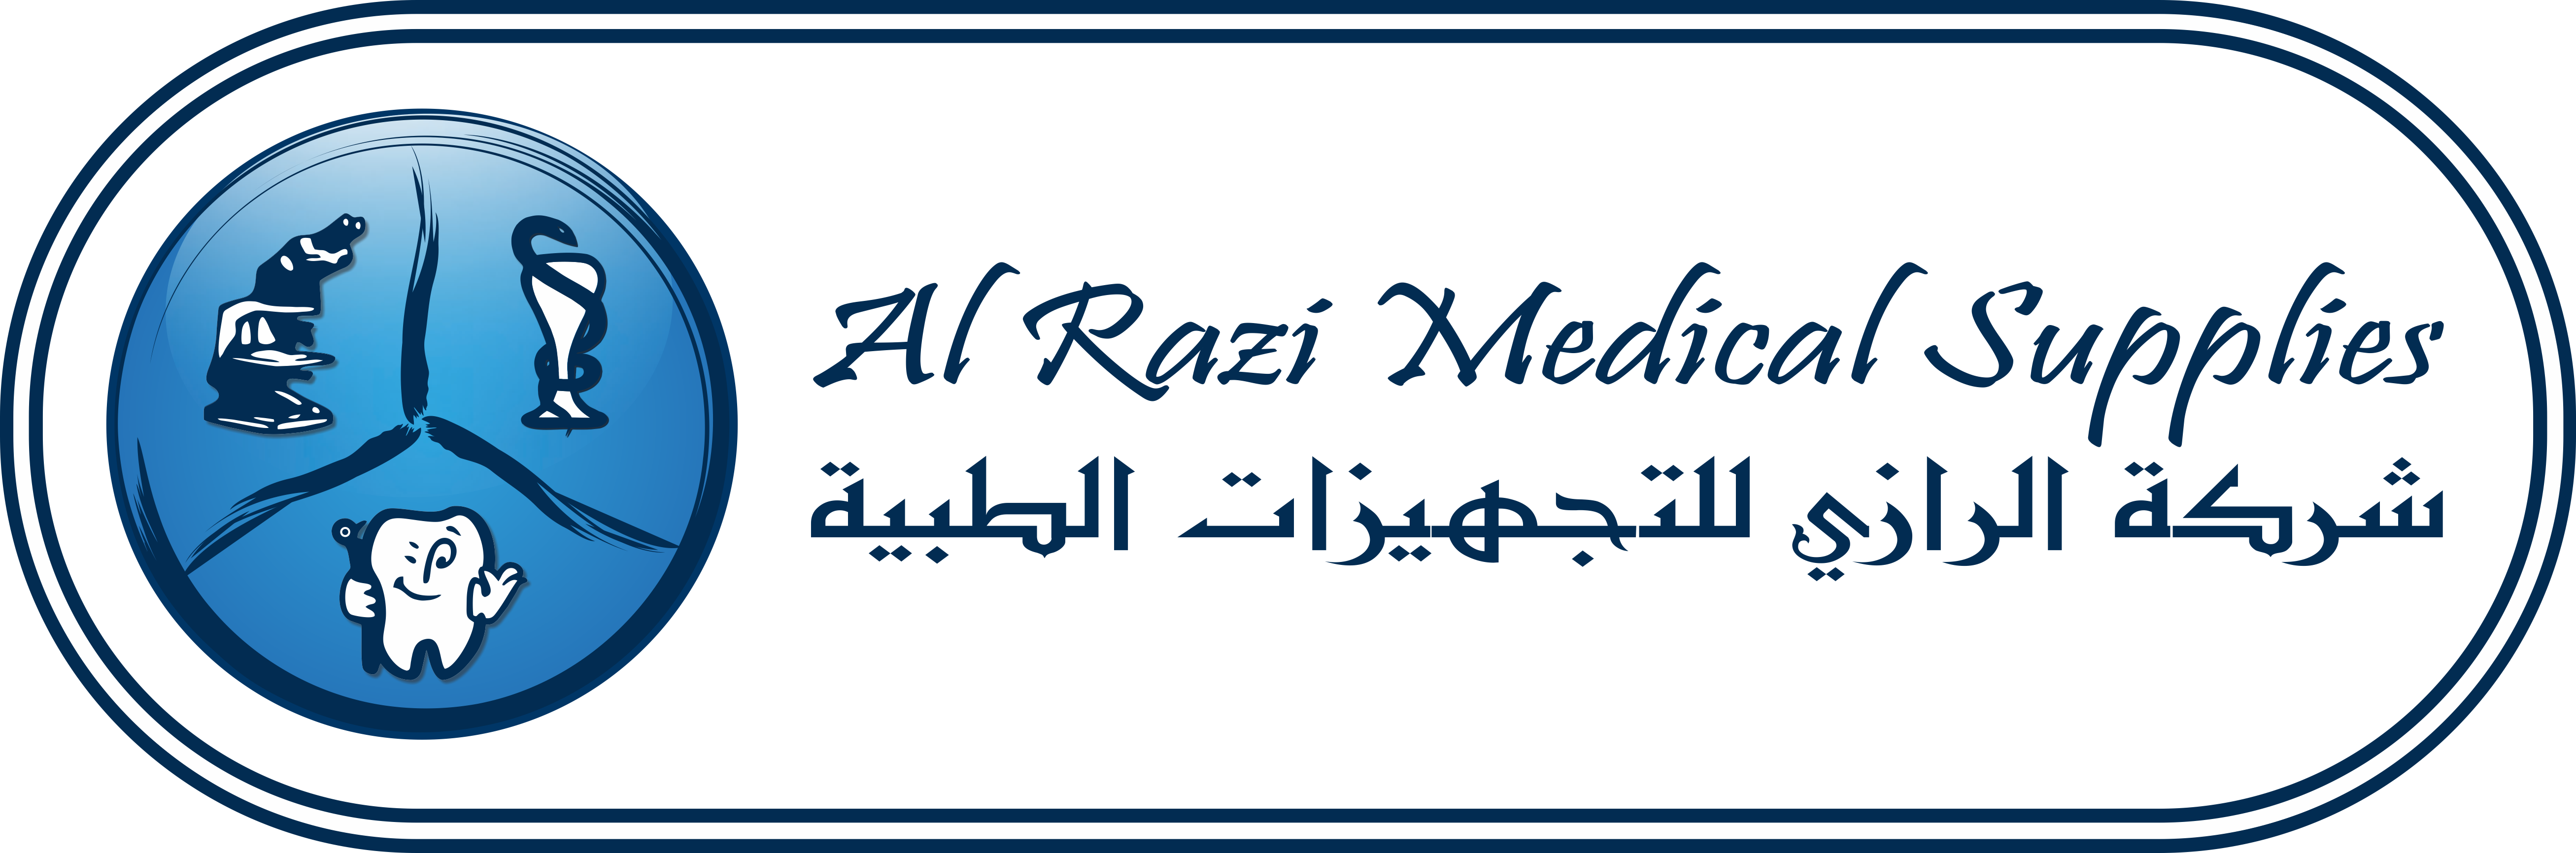 Alrazi Medical Supplies